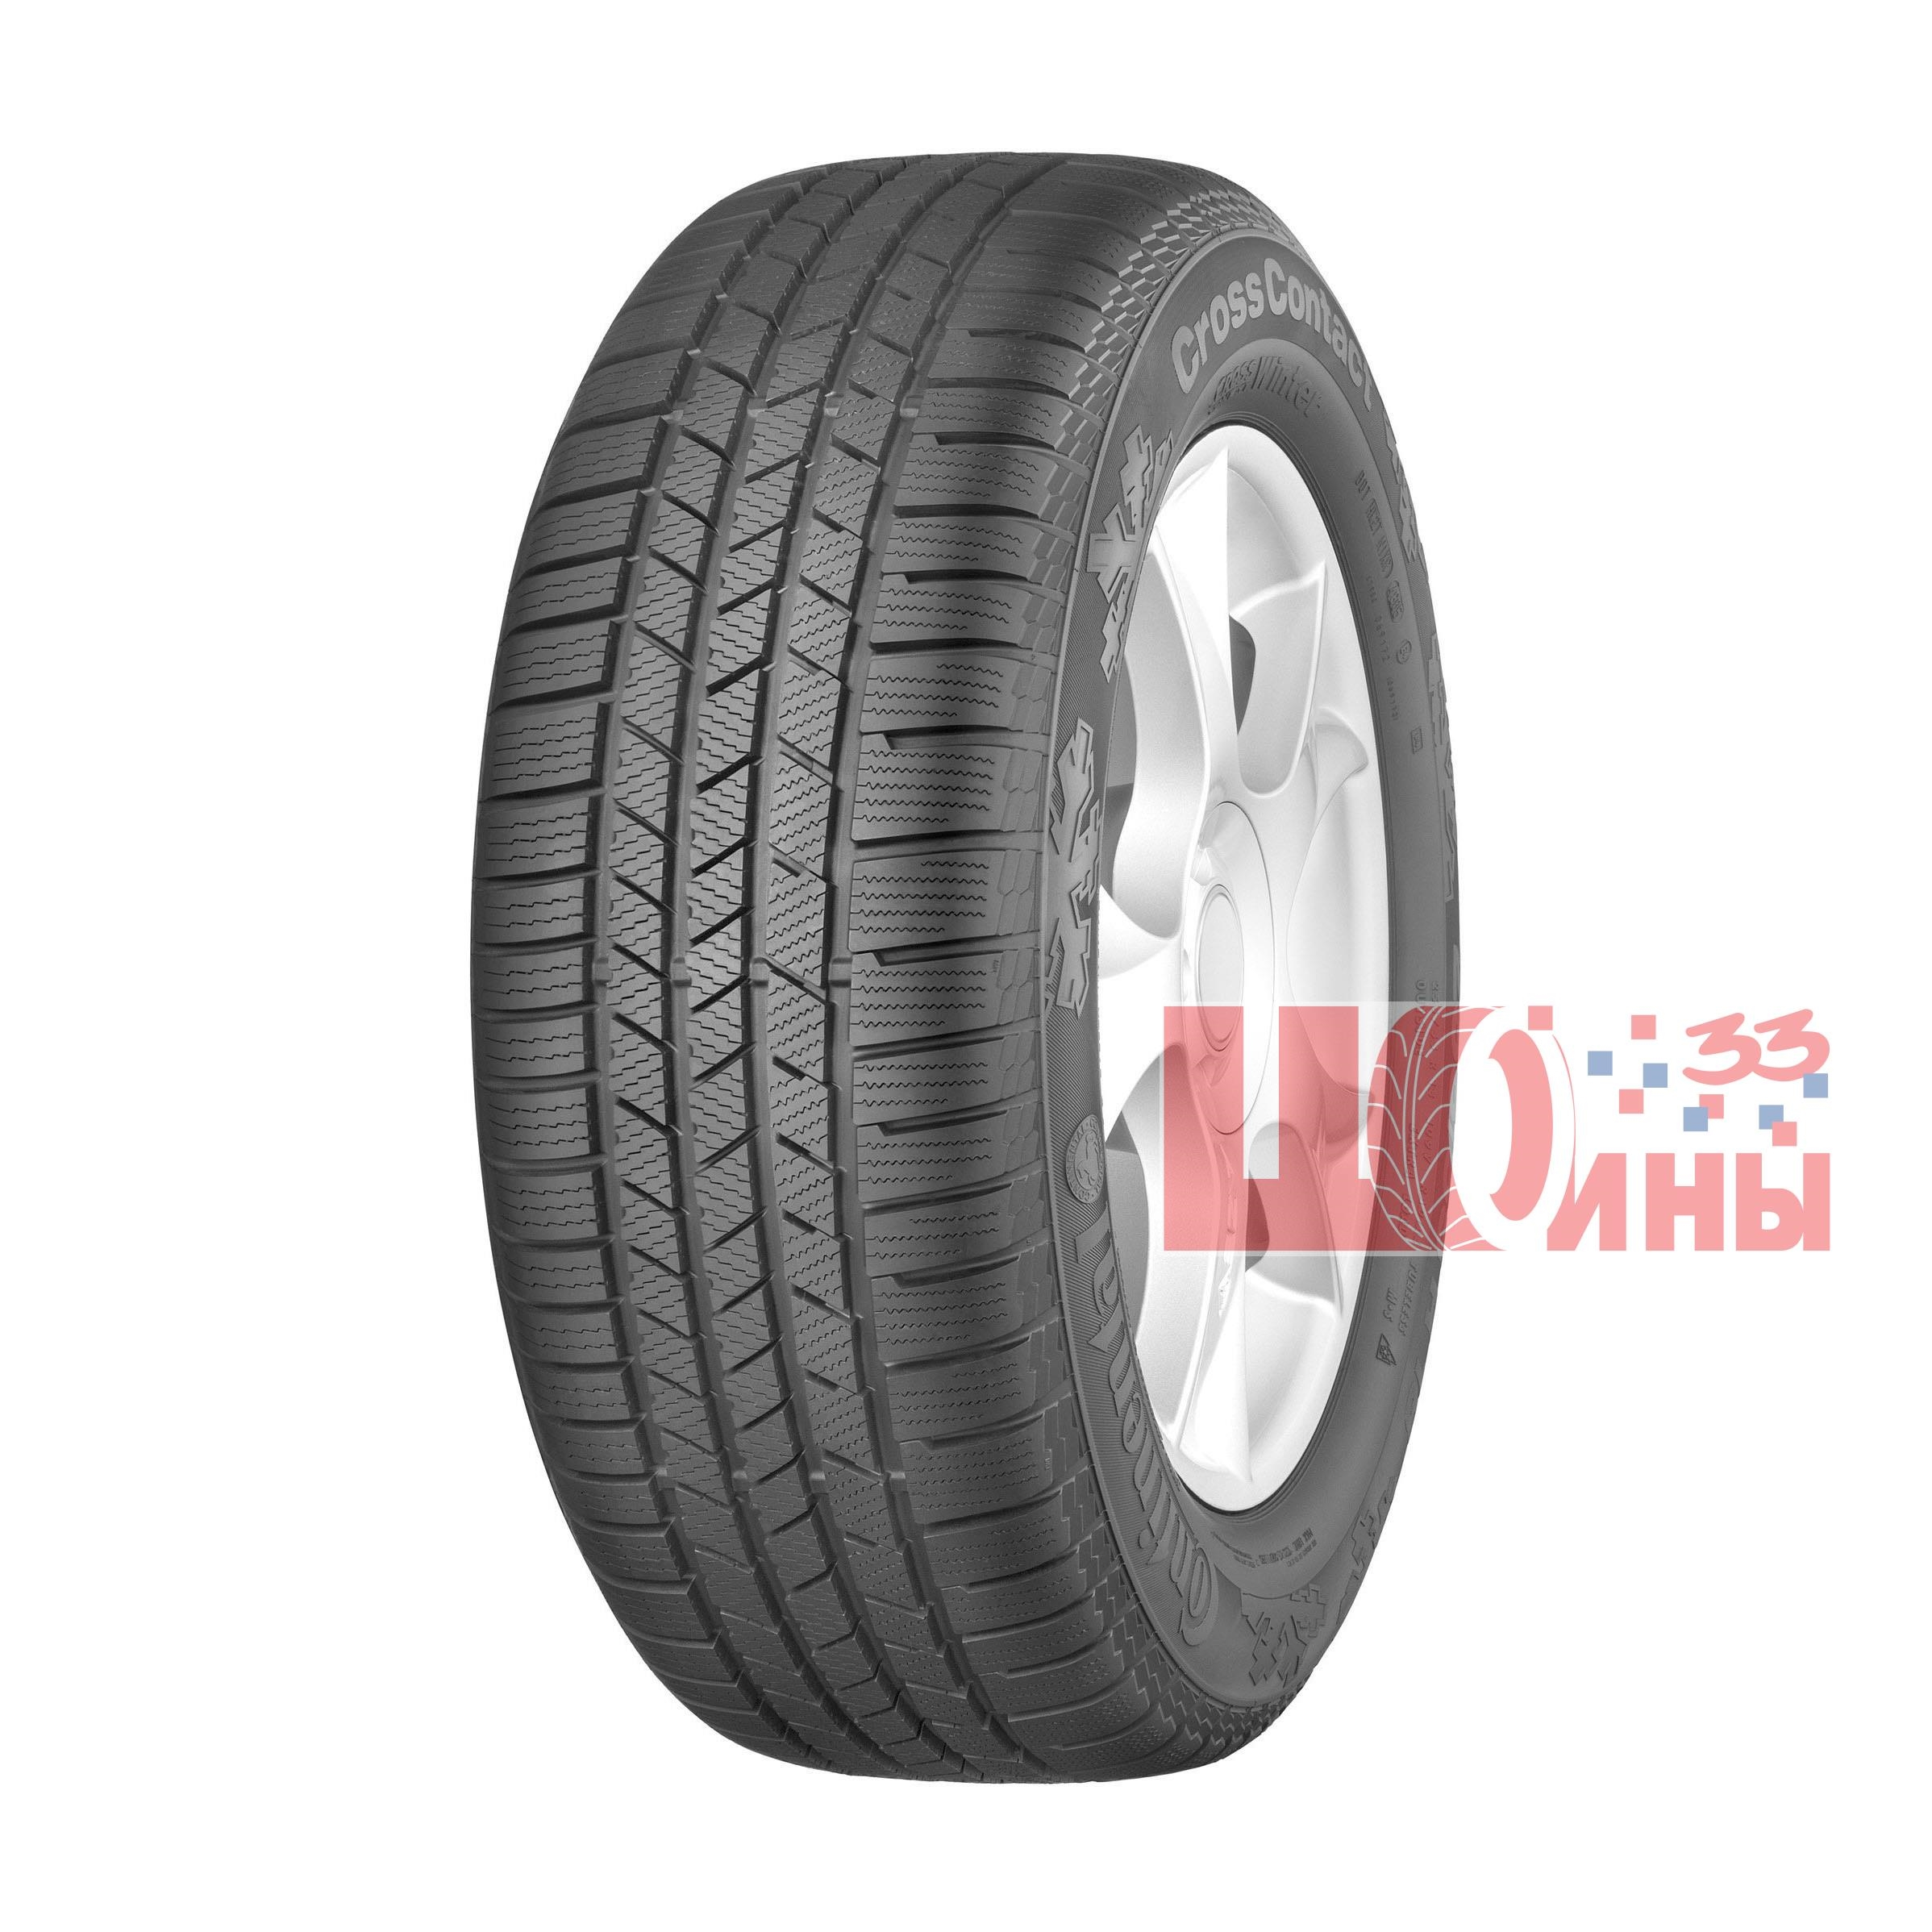 Б/У 235/55 R19 Зима CONTINENTAL C.Cross Contact Winter Кат. 4